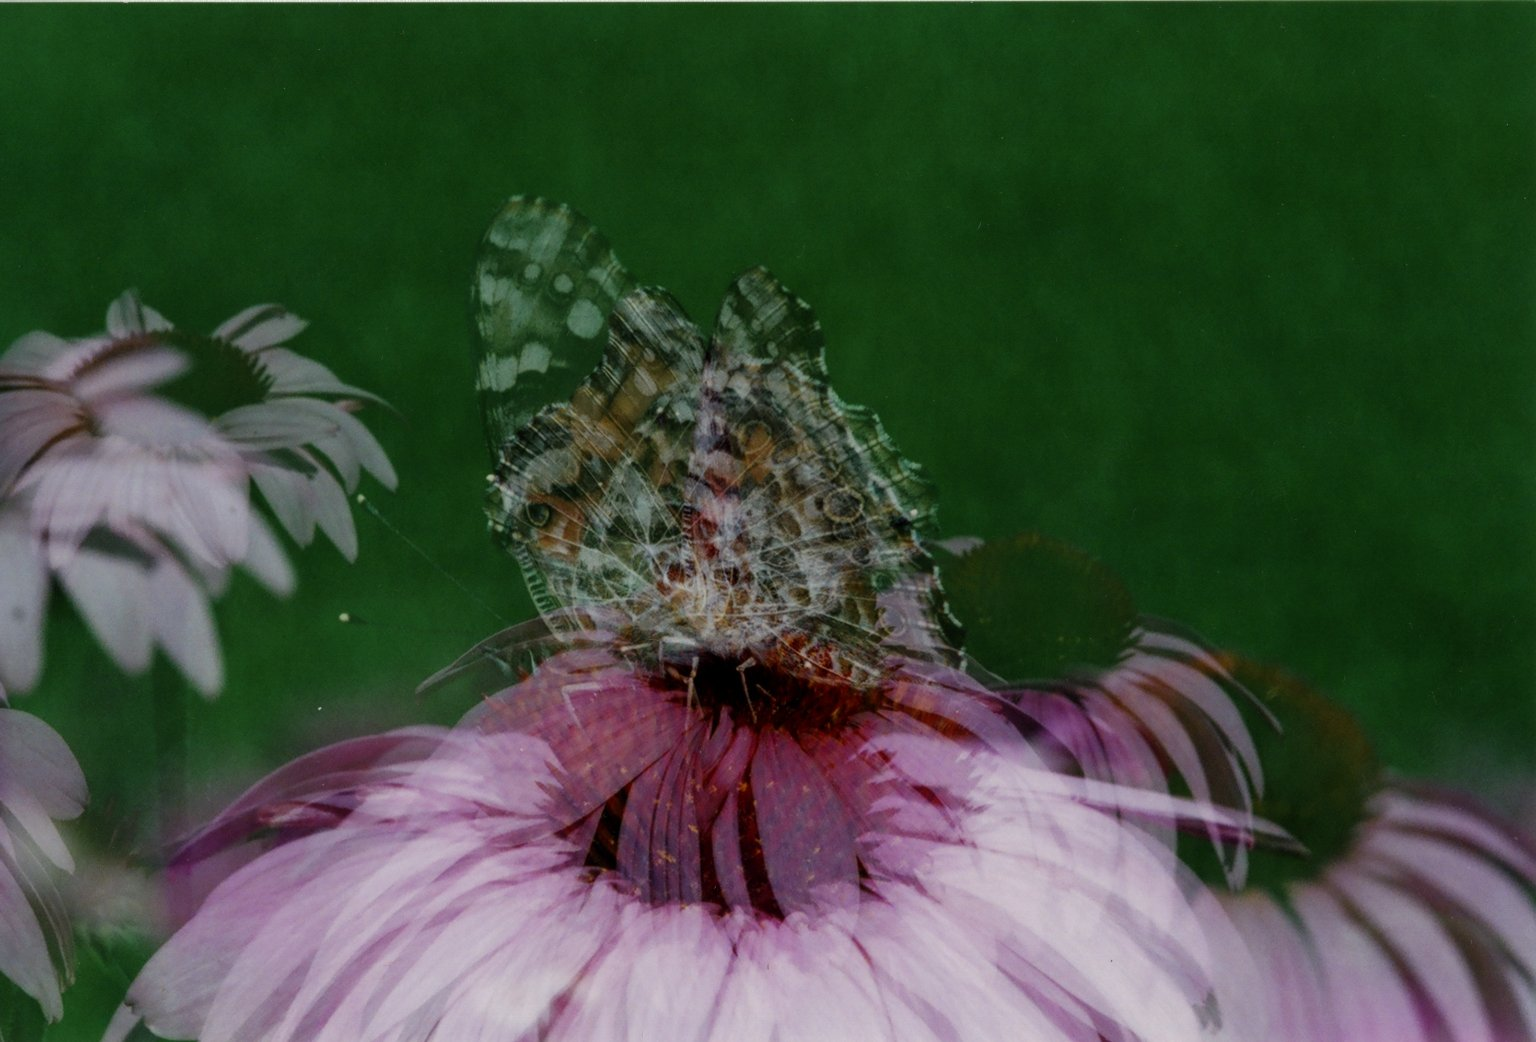 Nymphalidae Vanessa or painted lady butterfly on pink flower